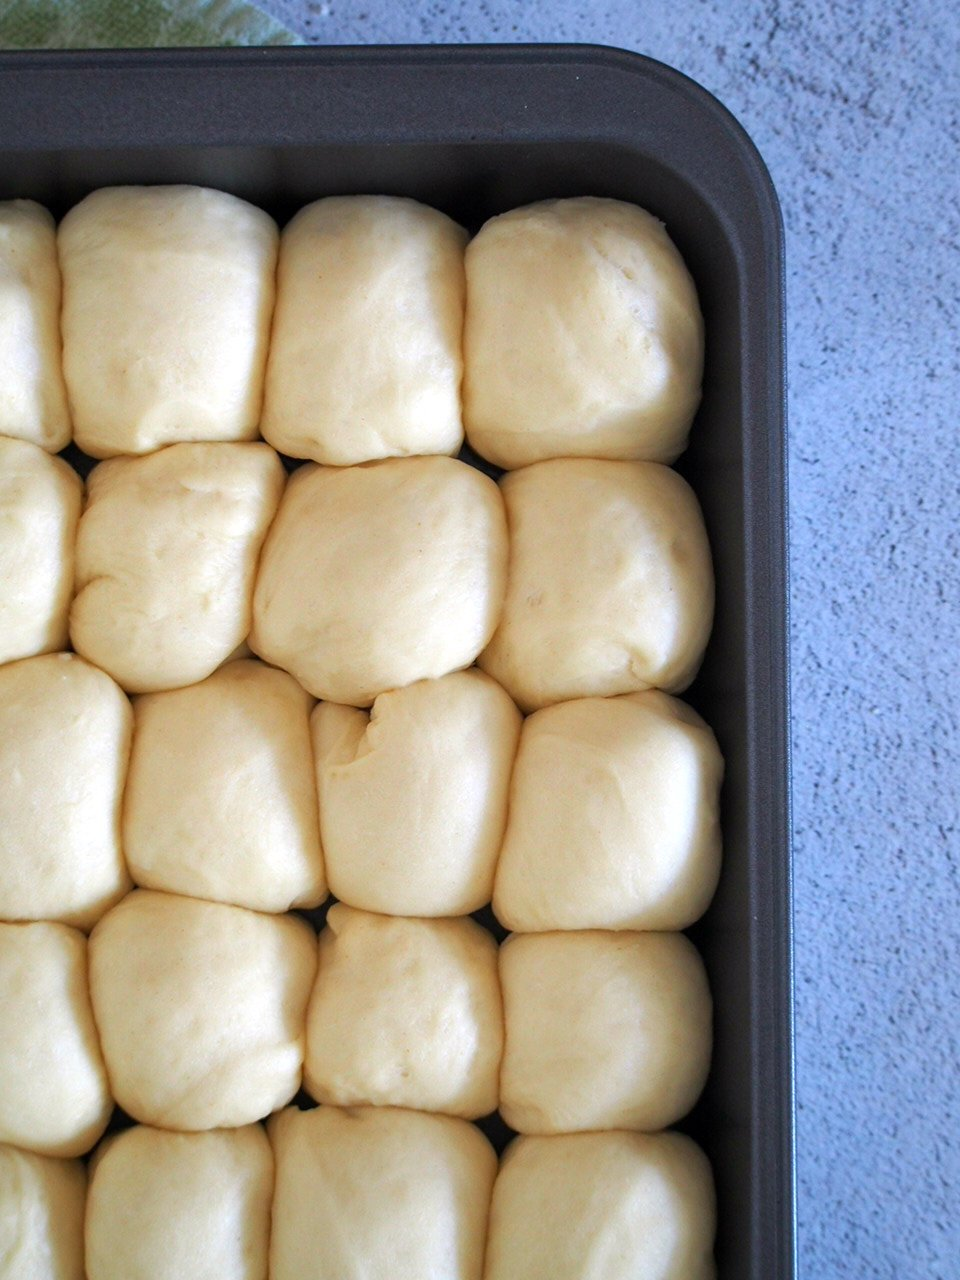 The shaped Hawaiian Rolls dough, risen and ready for baking.